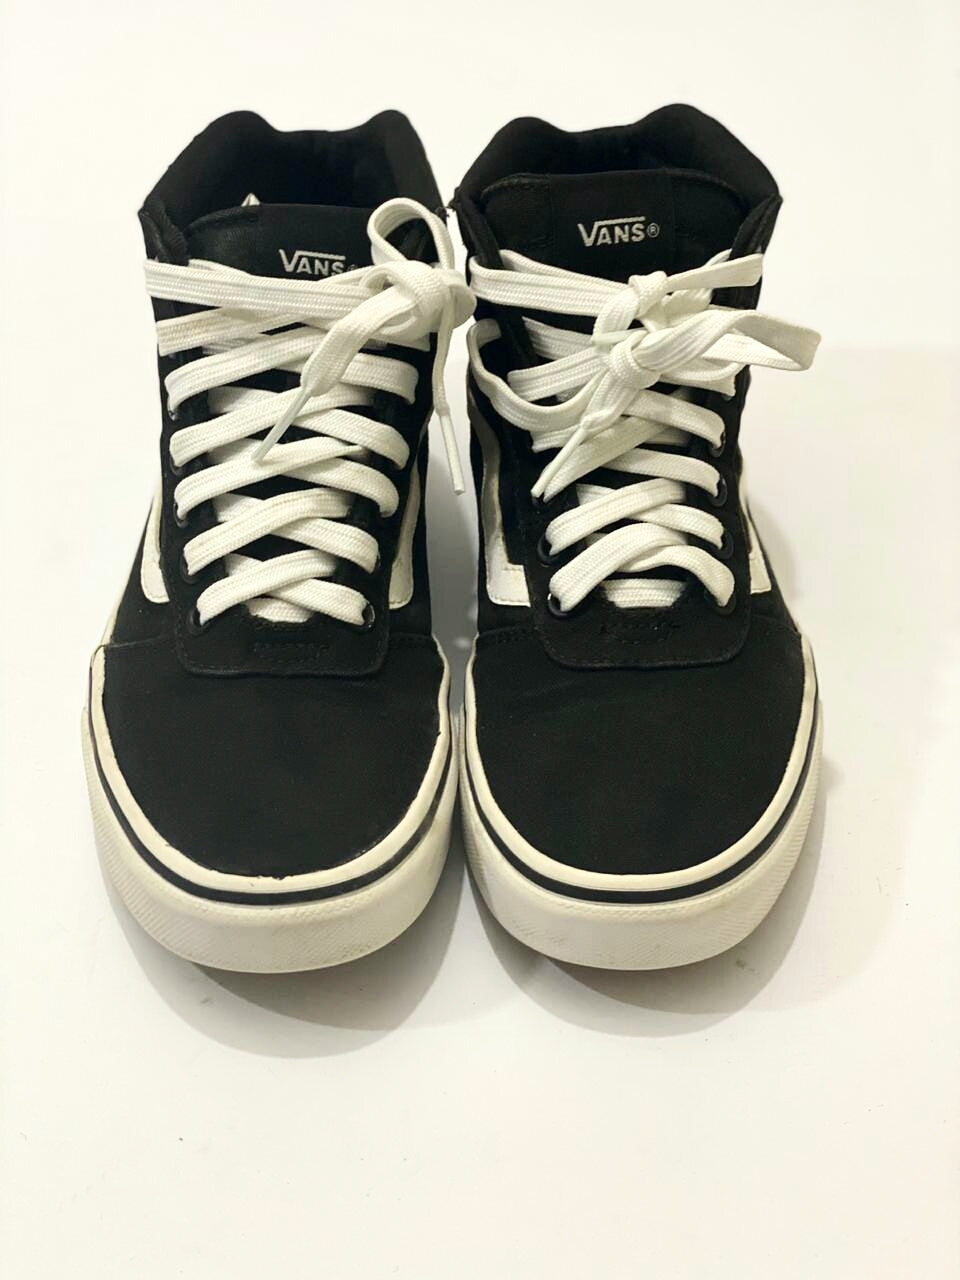 Vans Old Skool Black High Top. Size U.S.# 7.0- Uk# 4.5 PAK# 39